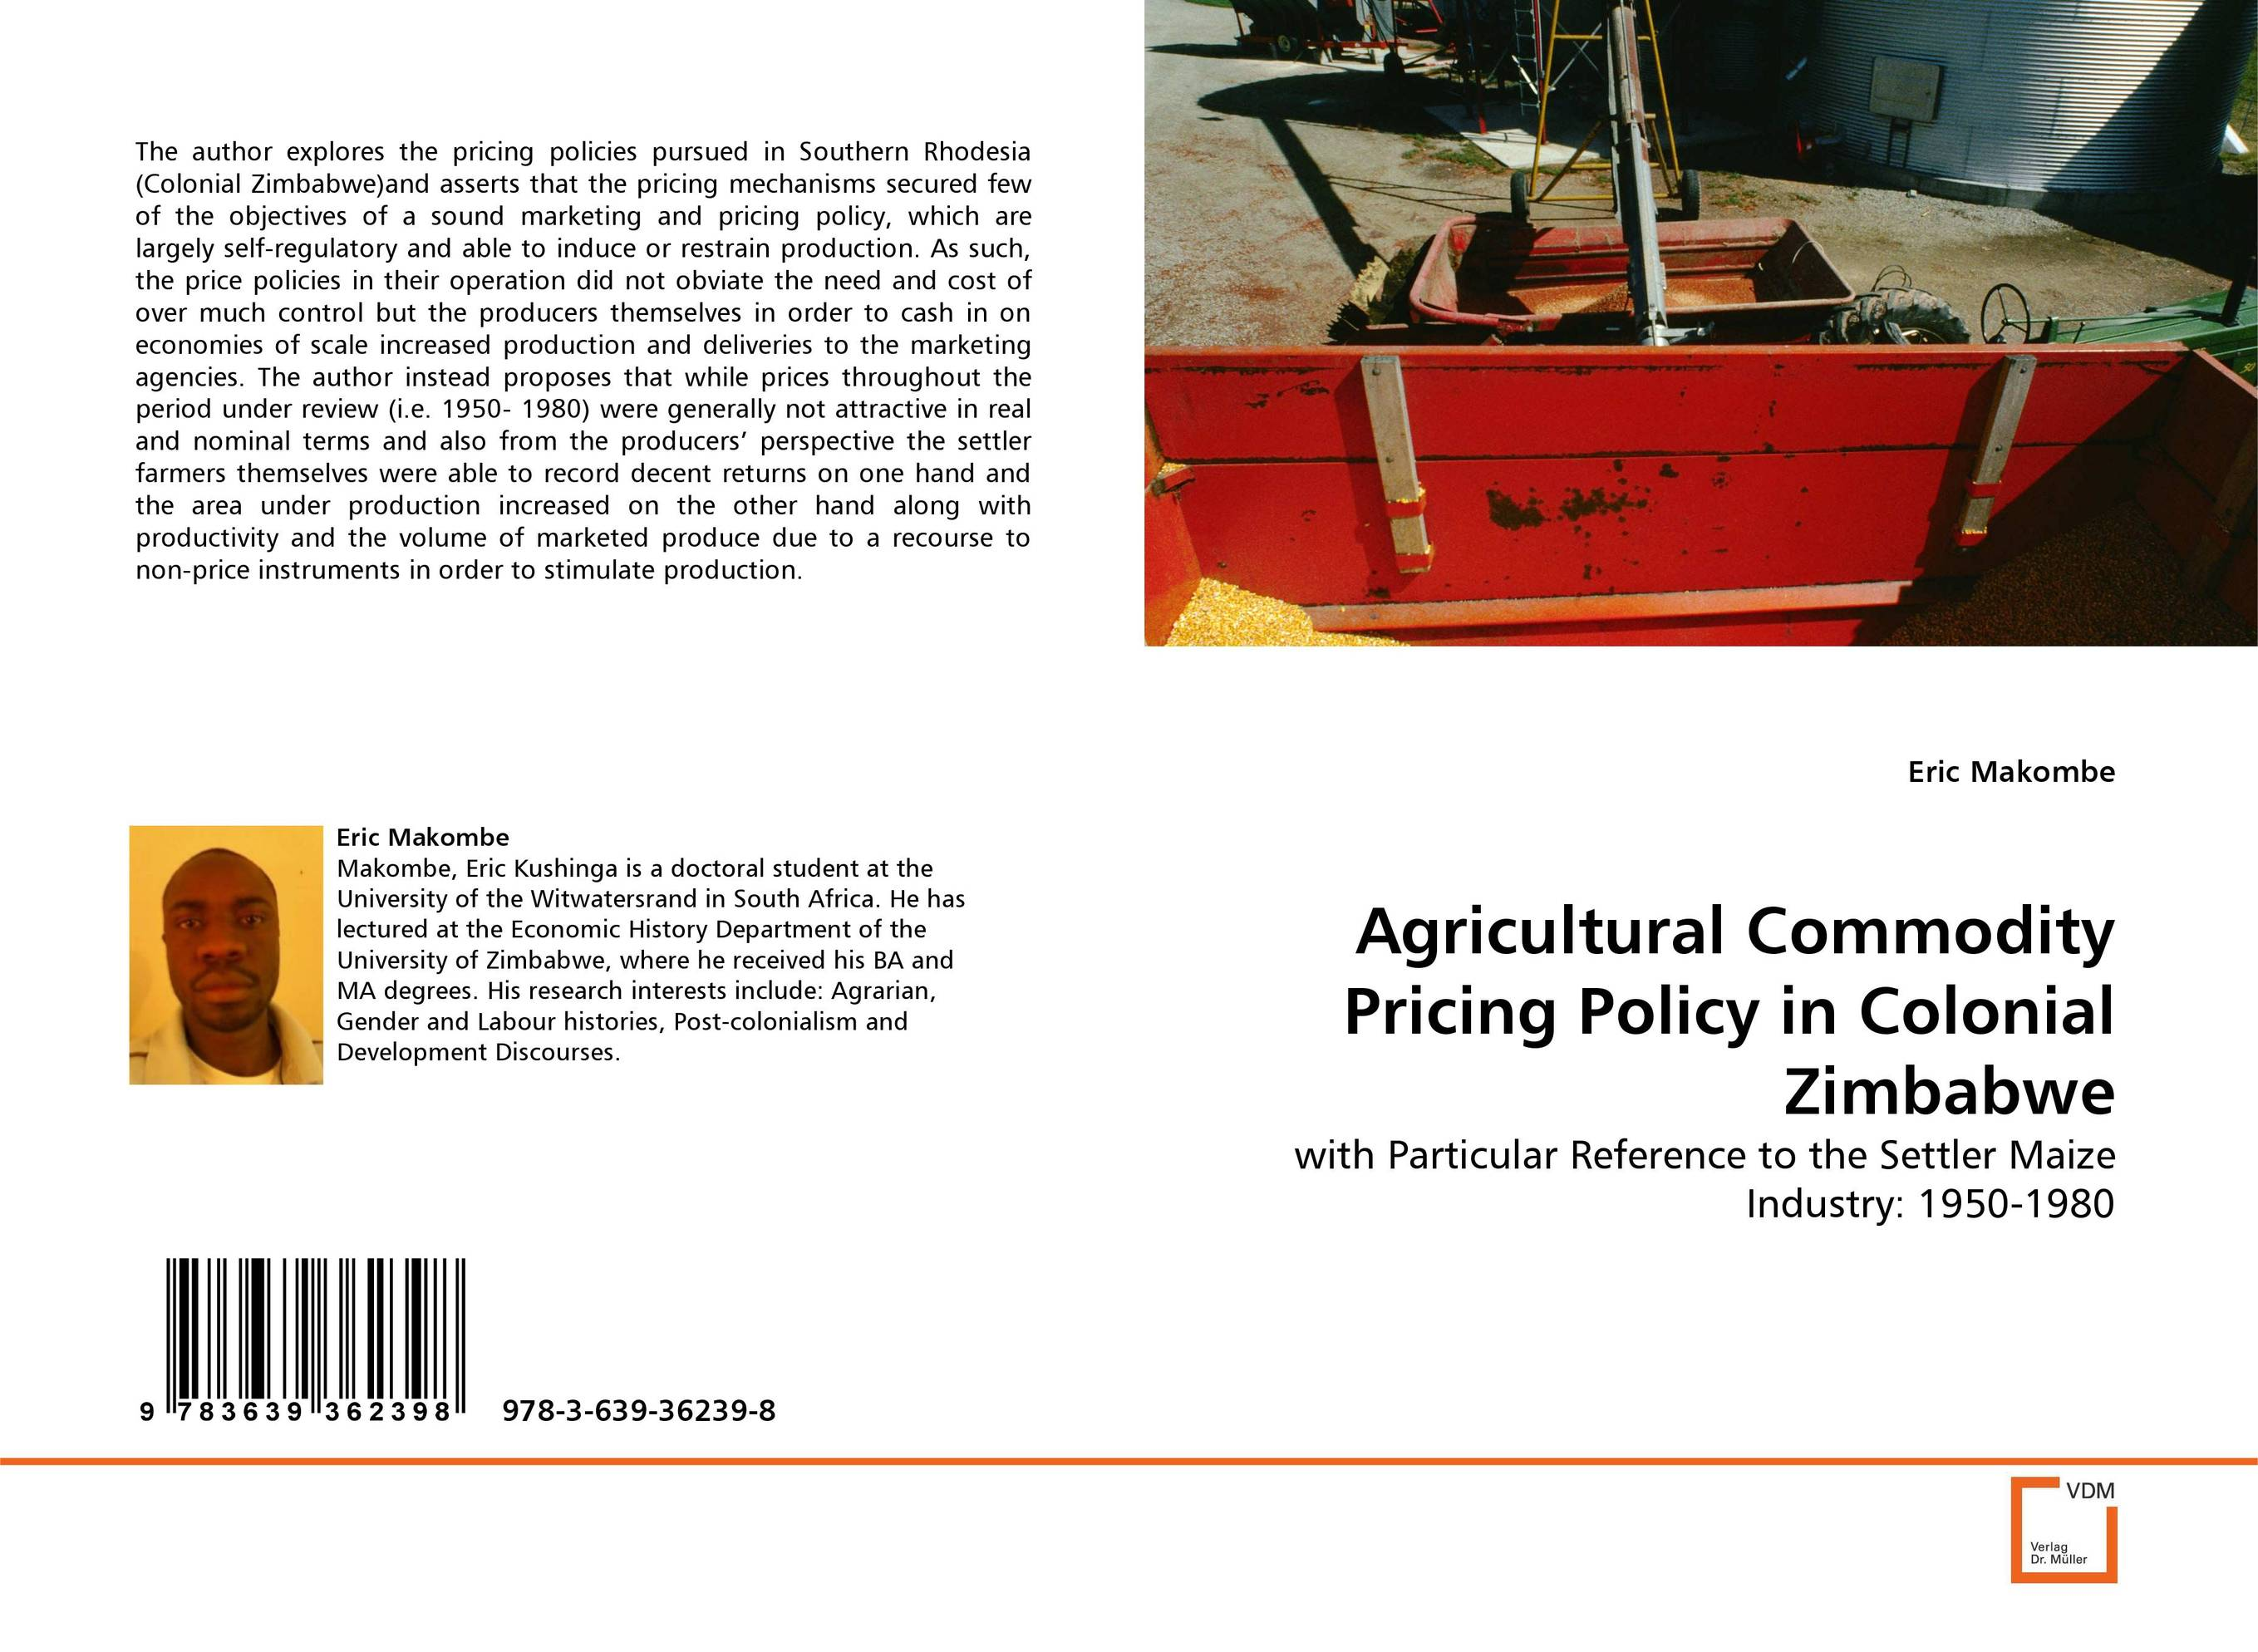 Agricultural Commodity Pricing Policy in Colonial Zimbabwe cold storage accessibility and agricultural production by smallholders